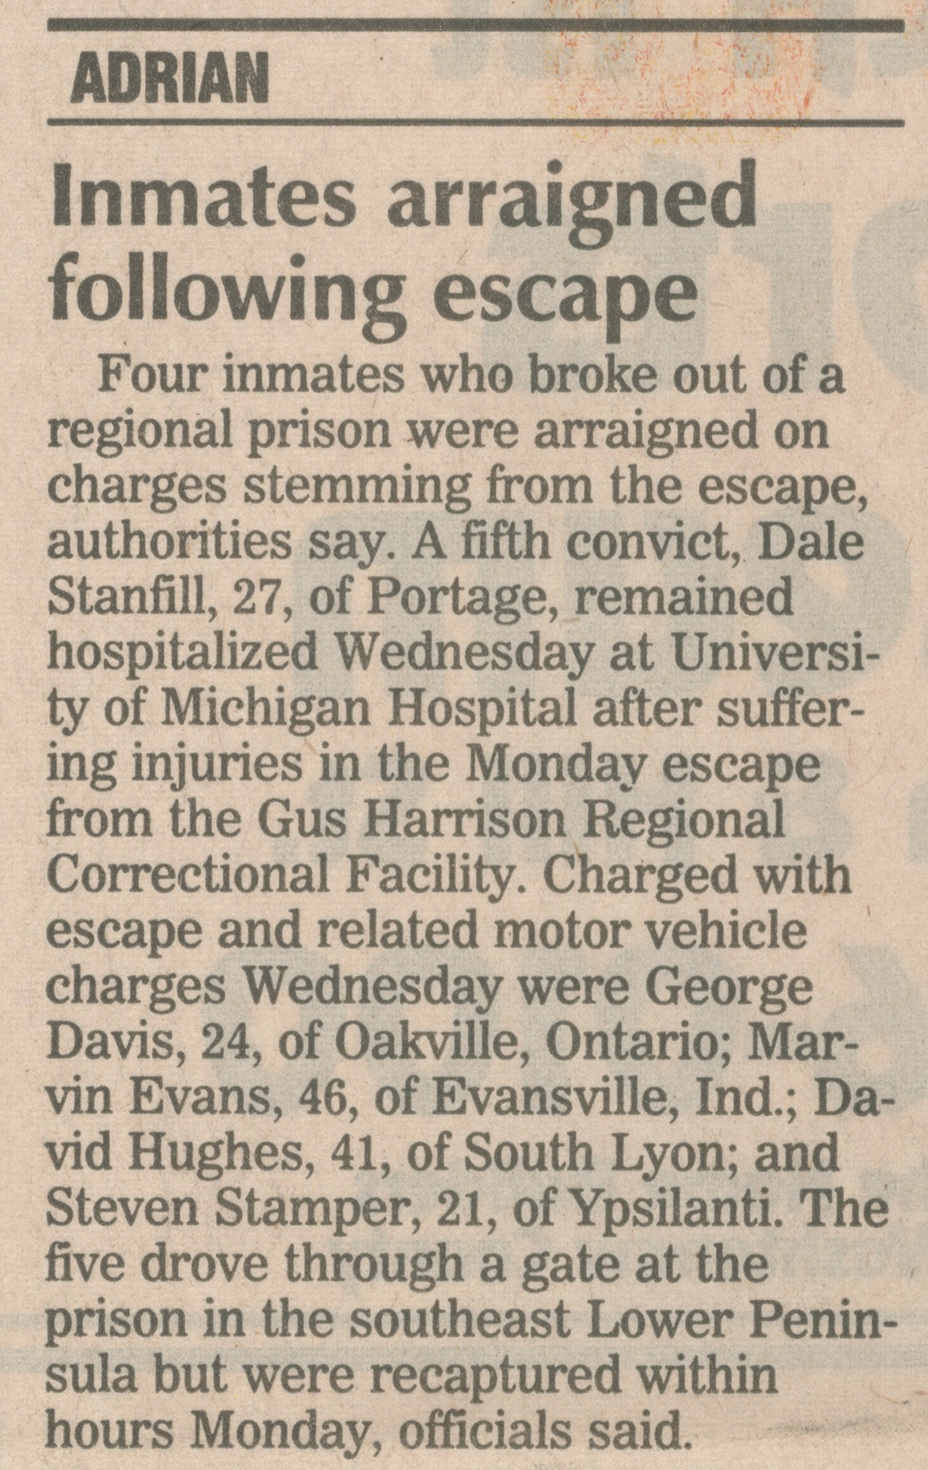 Inmates Arraigned Following Escape image